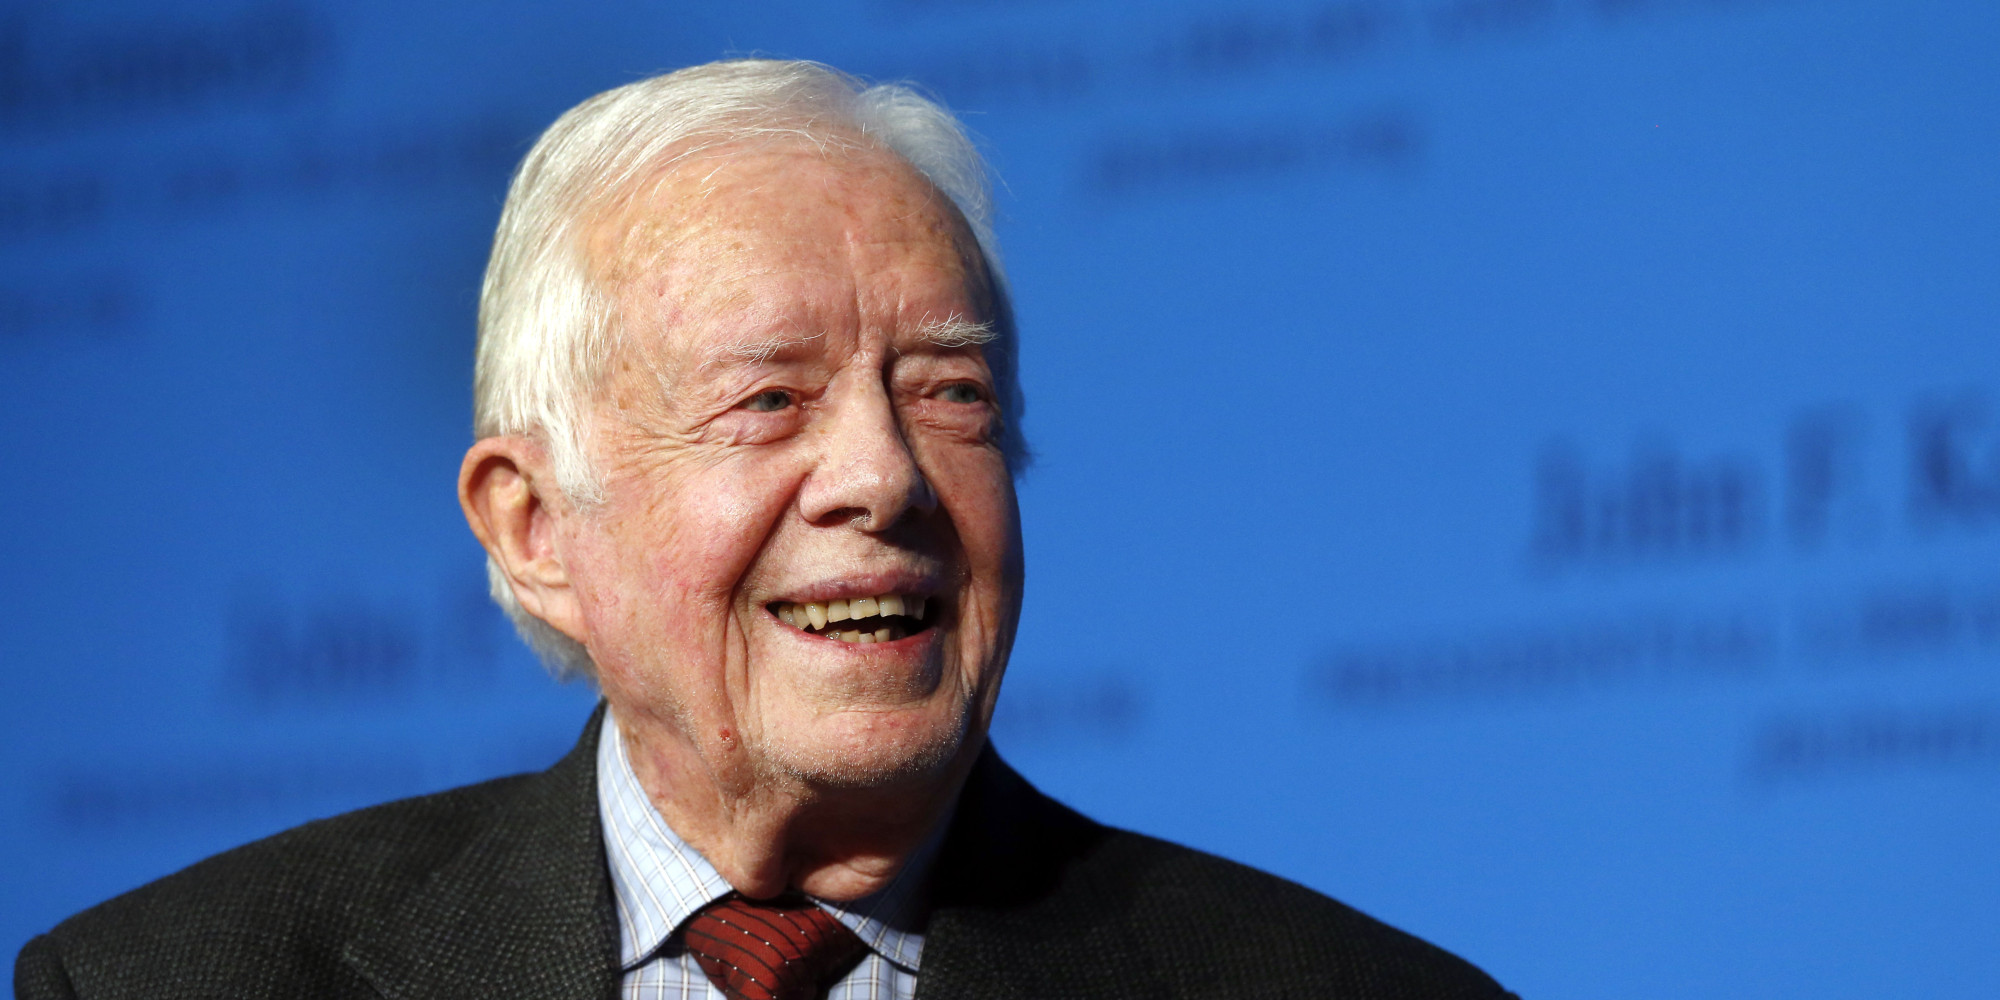 book project by jimmy carter 2015-7-31 nonfiction: best viewed as a supplement to keeping faith: memoirs of a president, jimmy carter's new memoir provides more information and insights about his personal life and values than on us politics and public policy.